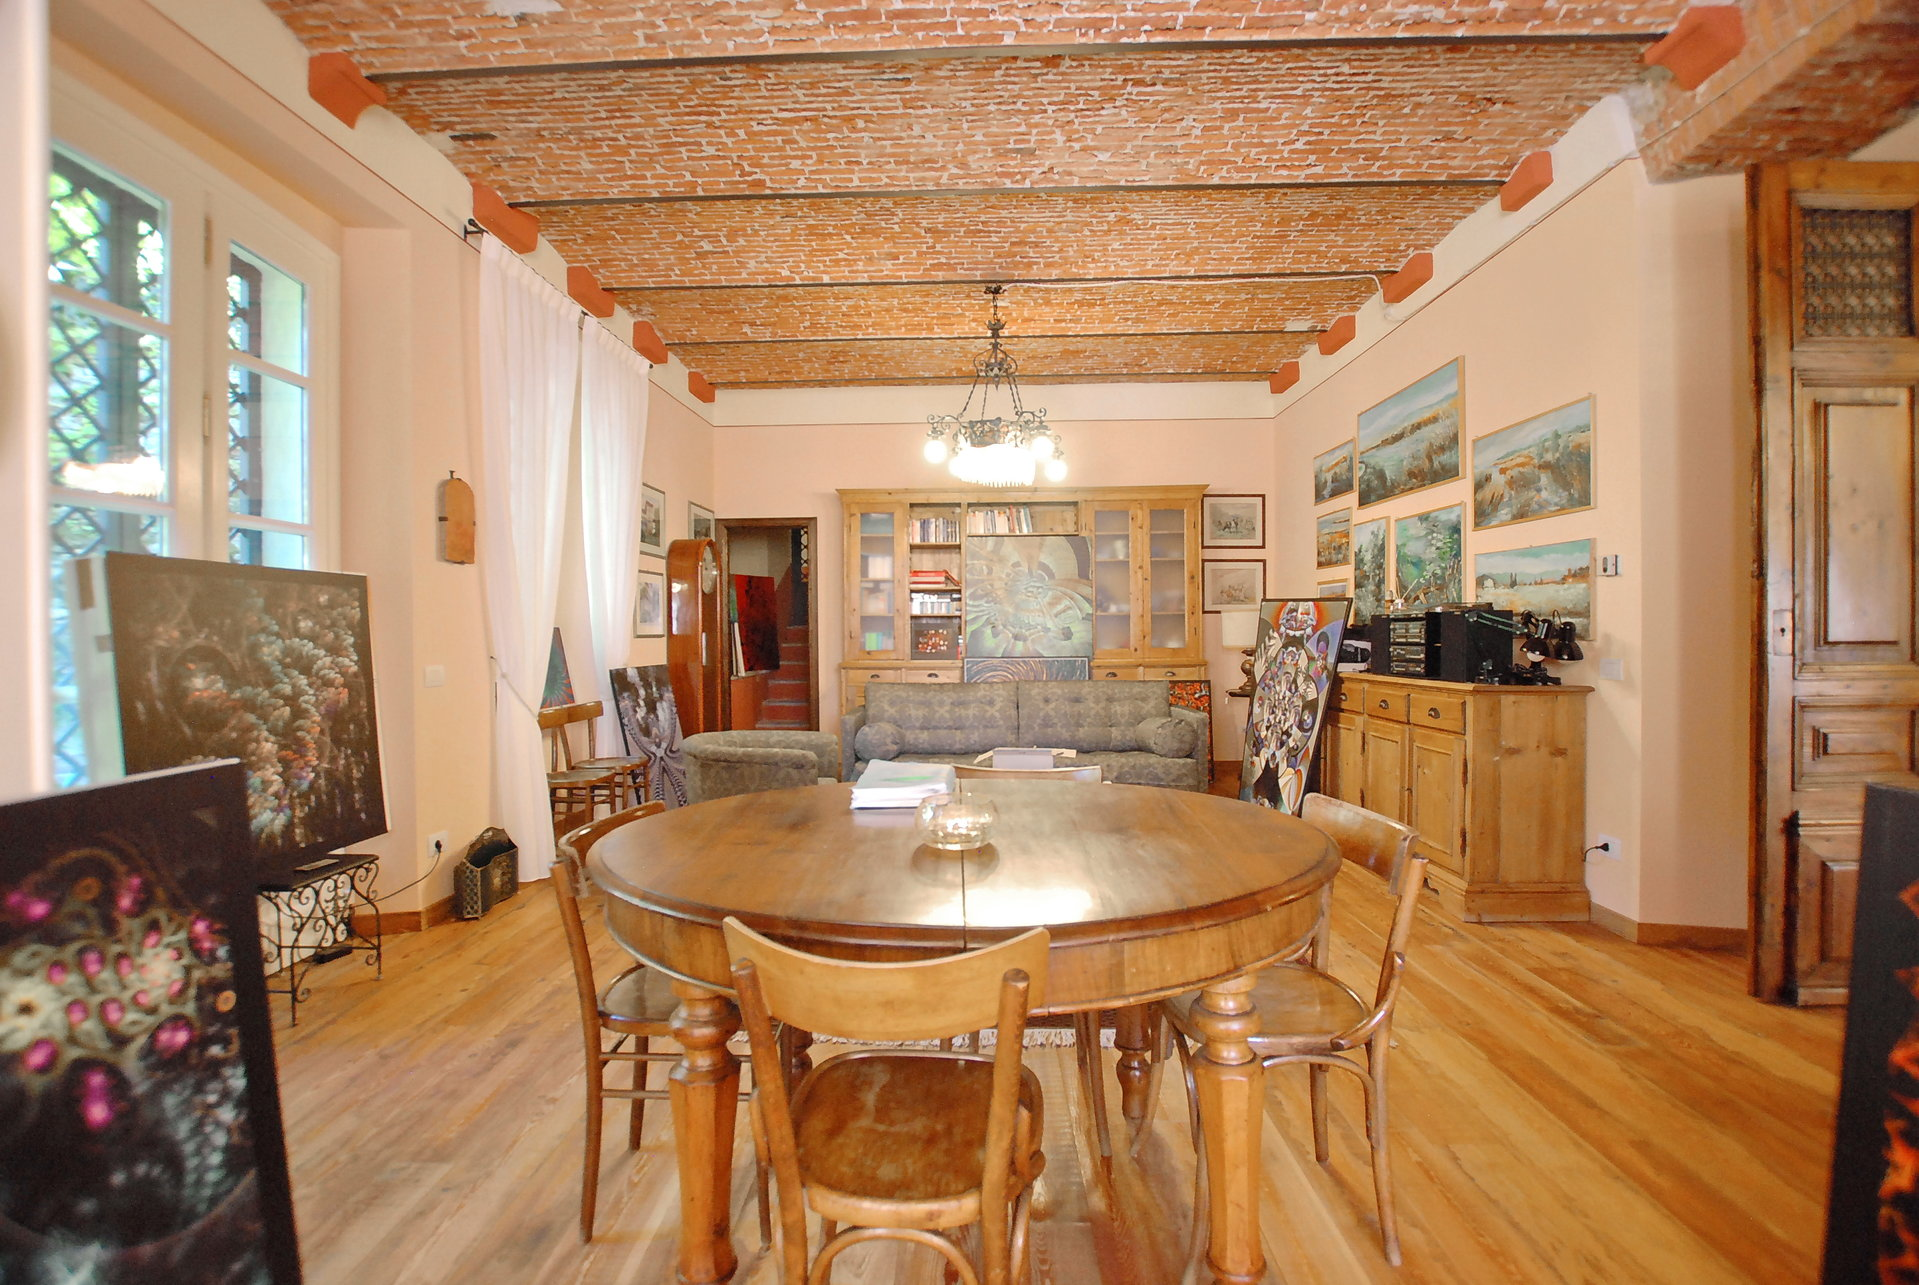 Historic villa with guesthouse and land for sale in Verbania - dining room